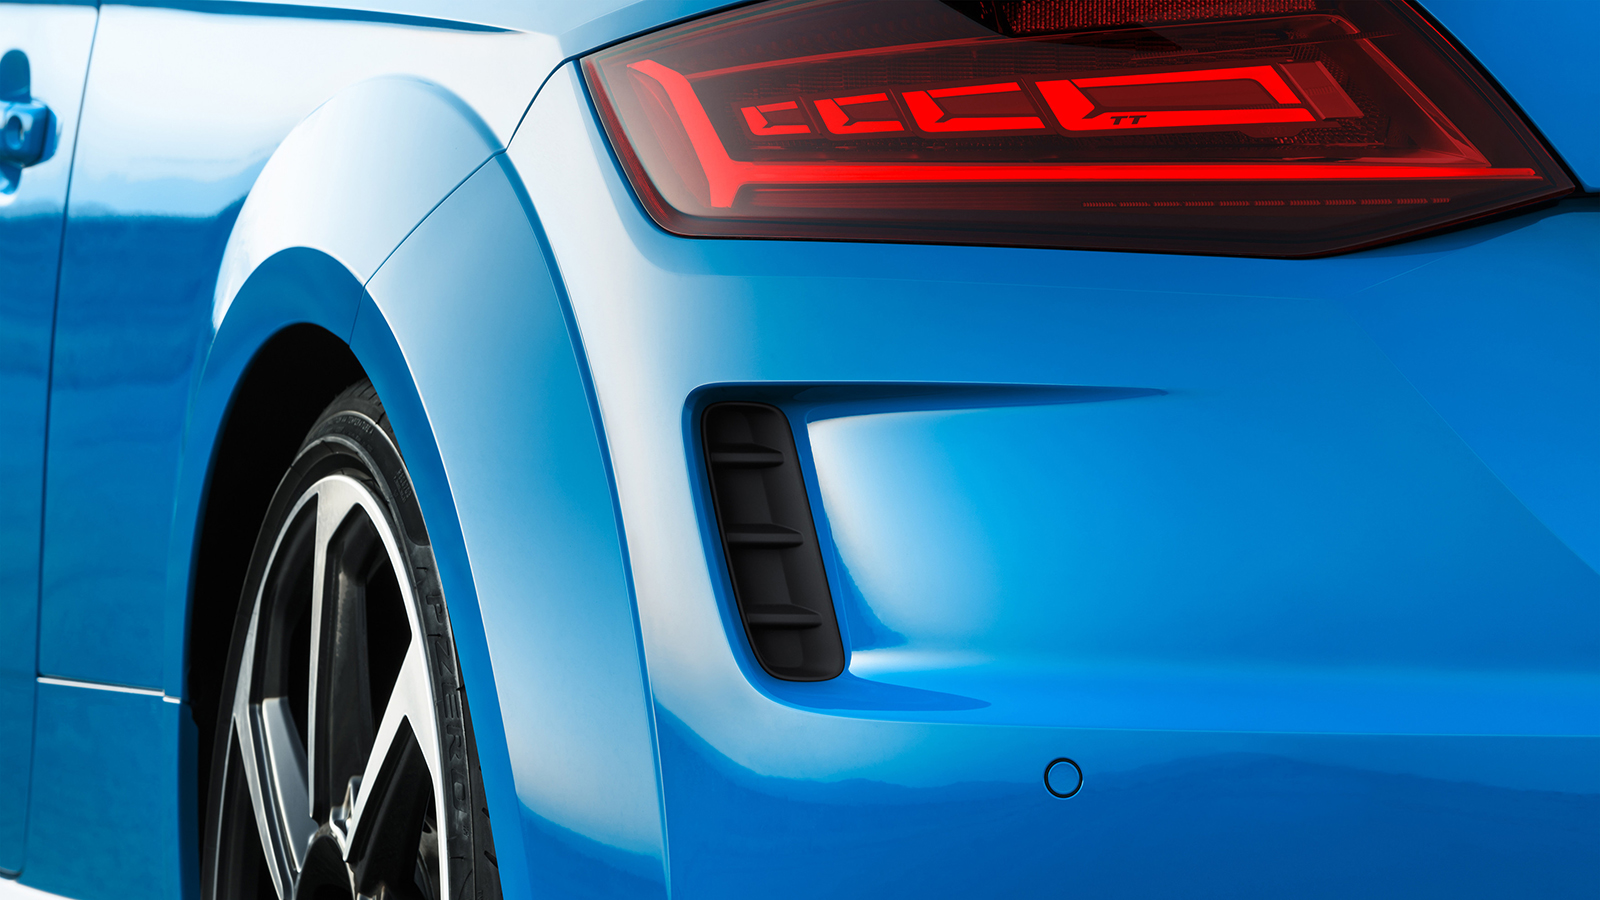 Audi USA Announces 2015 Model Year Vehicles and Pricing